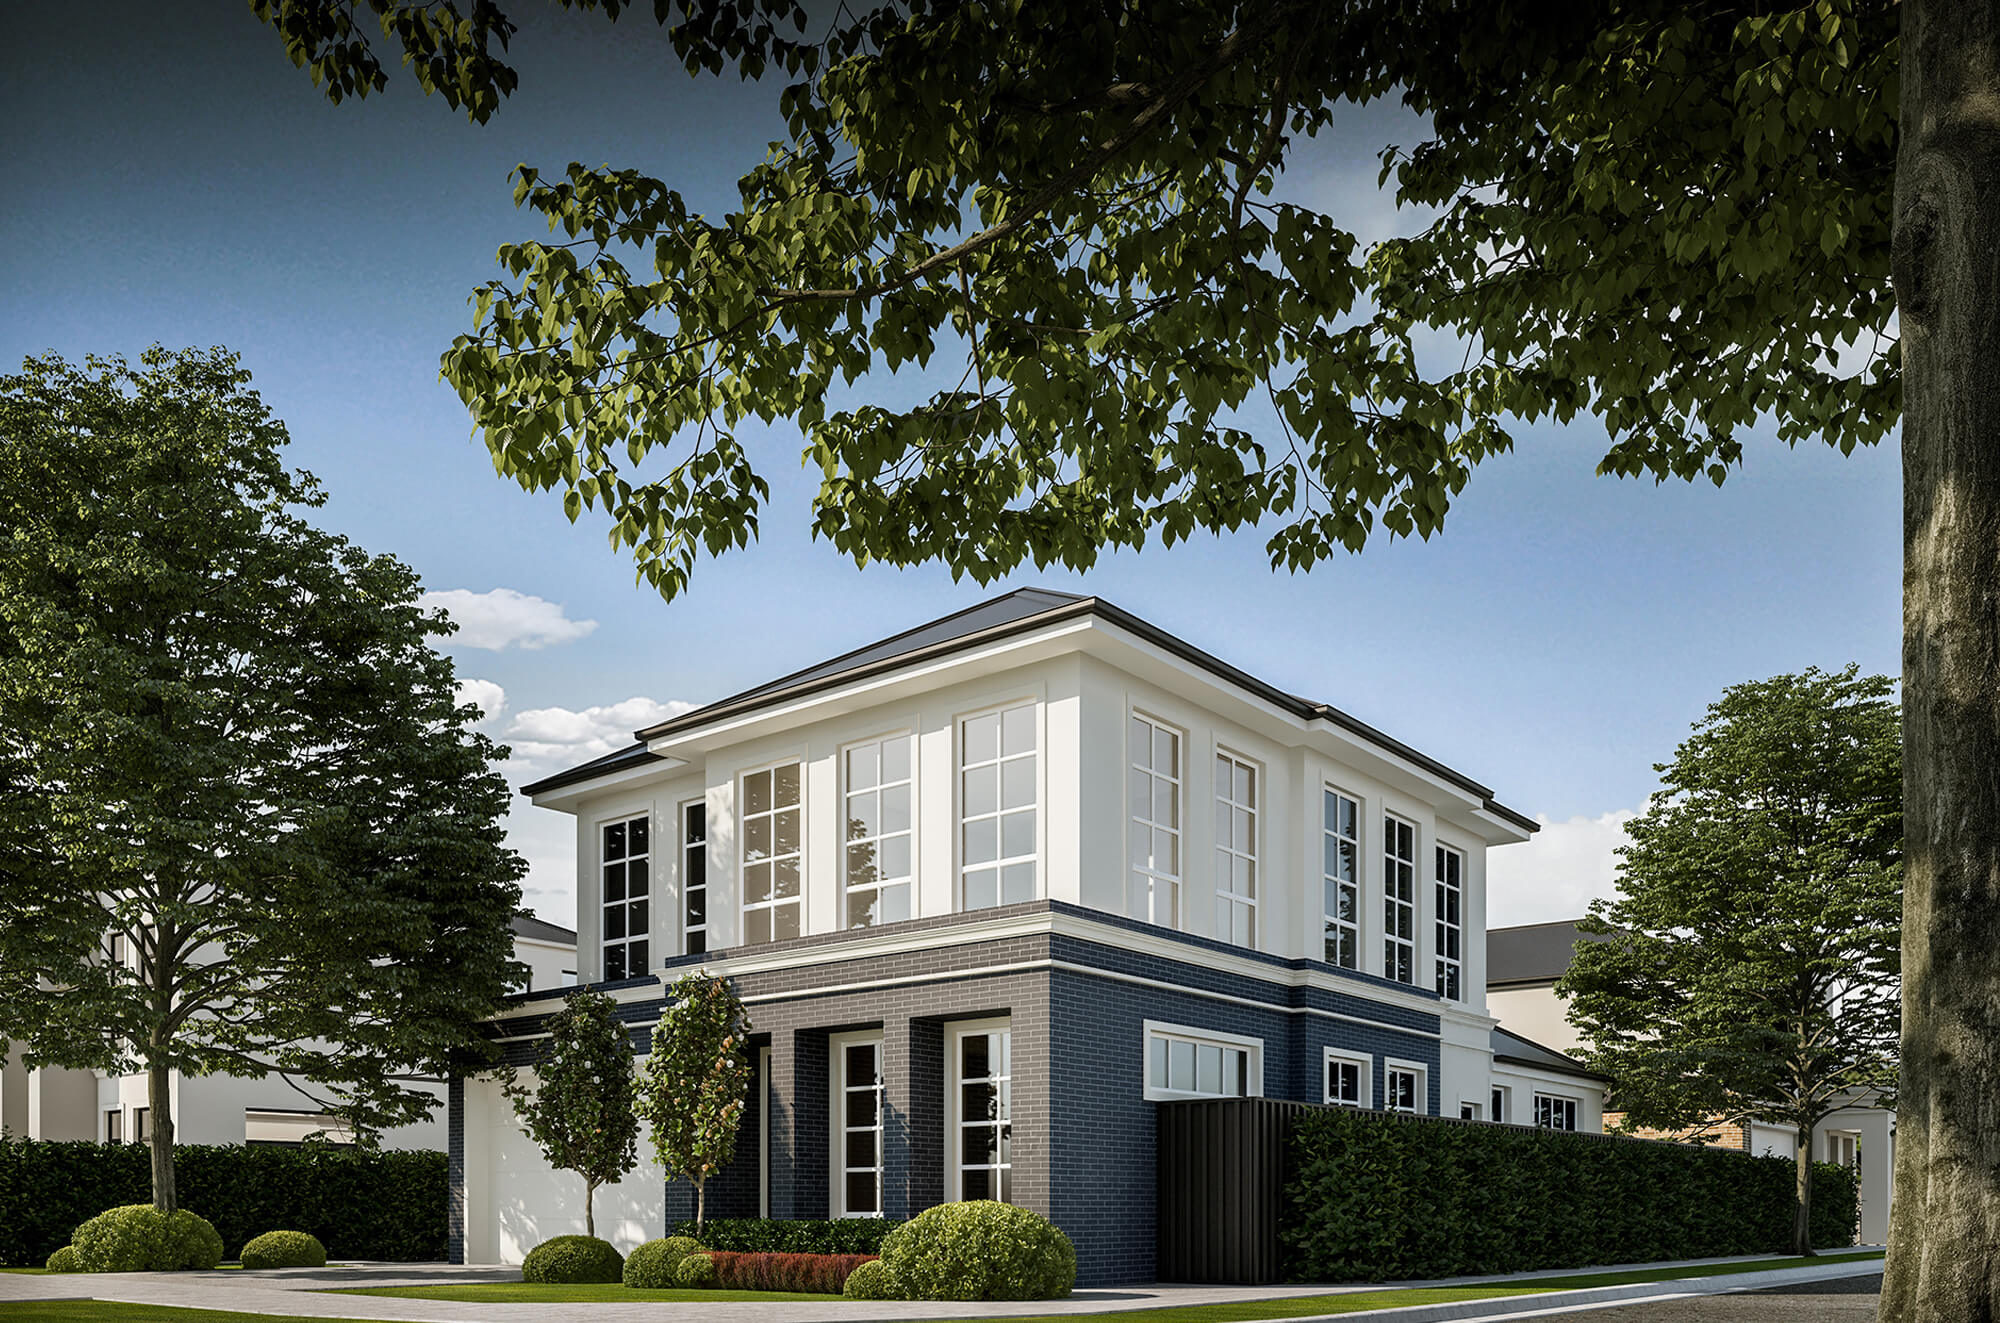 26 George Street Vale Park Custom Home & Land Package For Sale